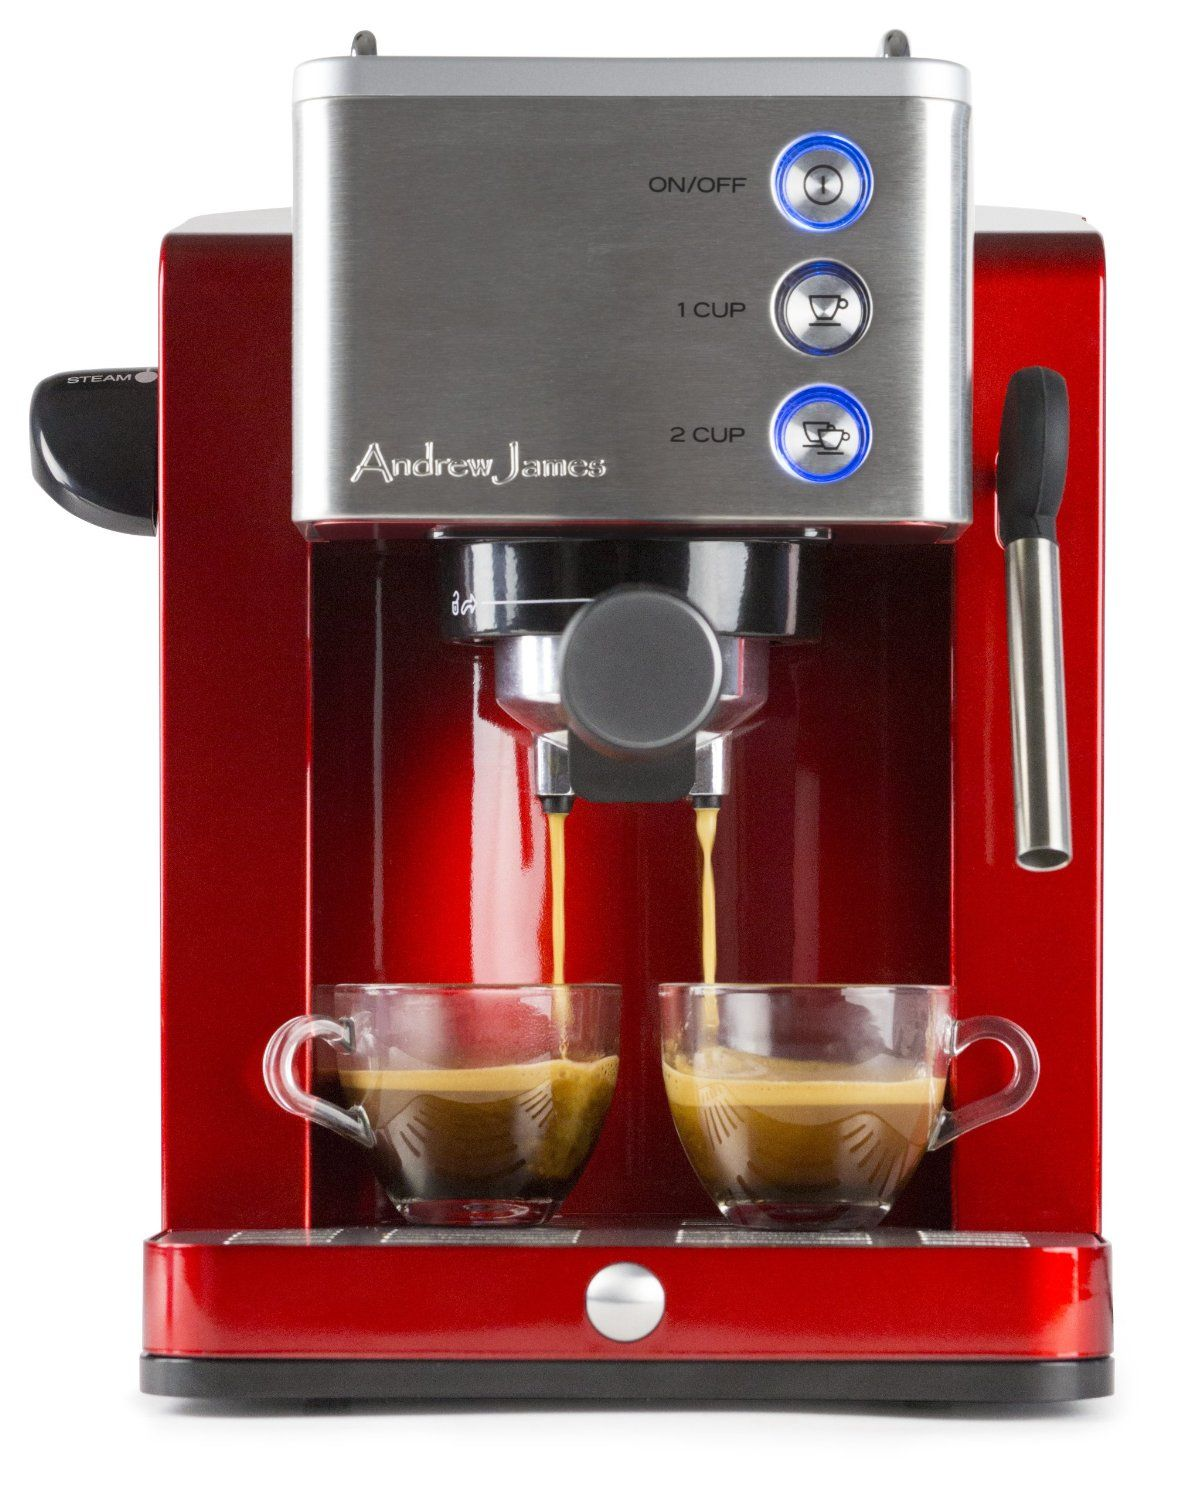 Uncategorized Andrew James Kitchen Appliances andrew james espresso cappuccino coffee maker in stunning red and stainless steel with cup warmer